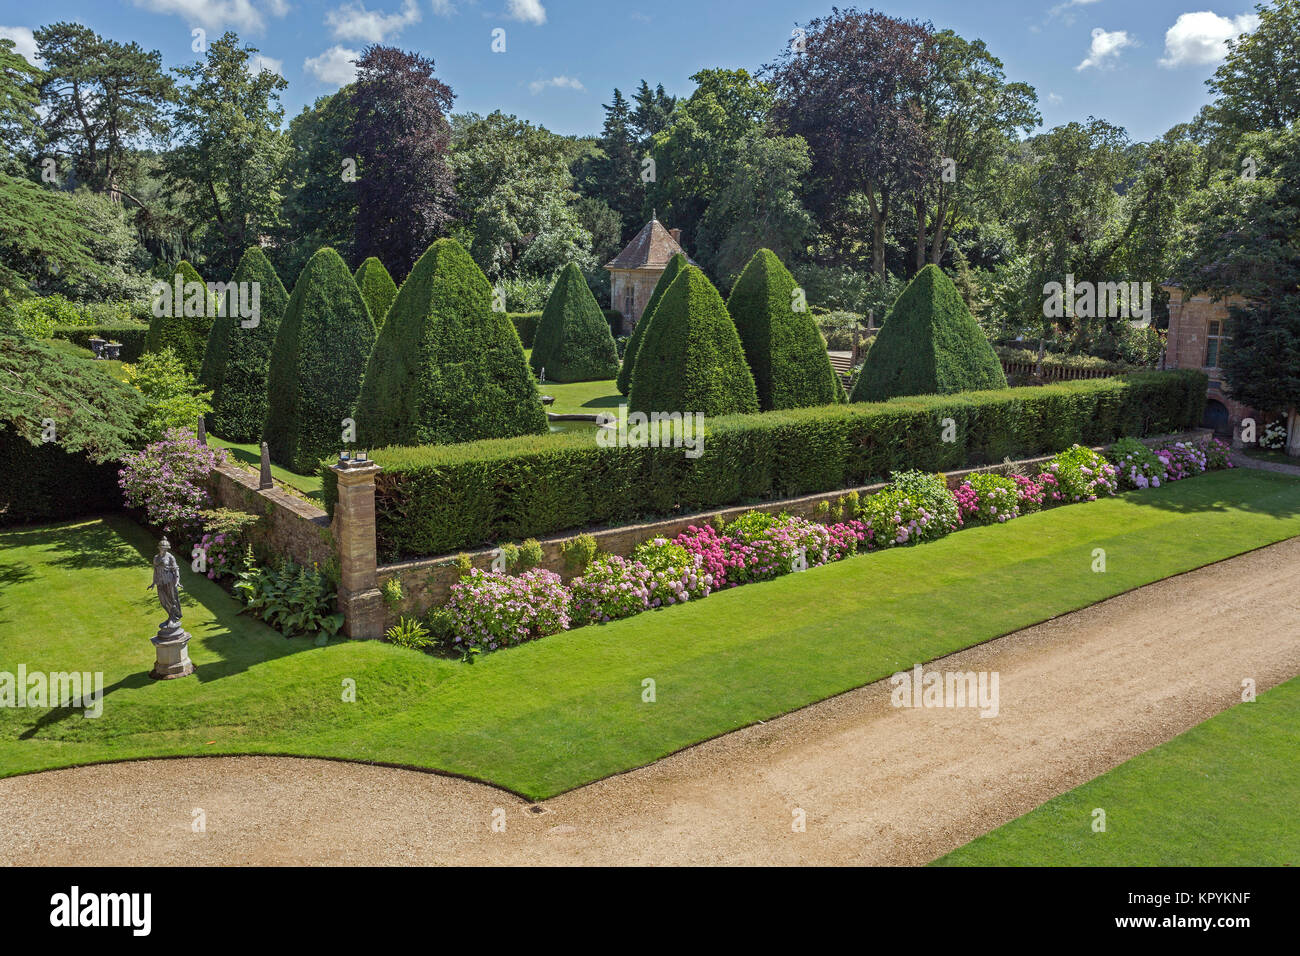 The giant yew pyramids in the Great Court at Athelhampton House, Puddletown, Dorset, England, UK - Stock Image